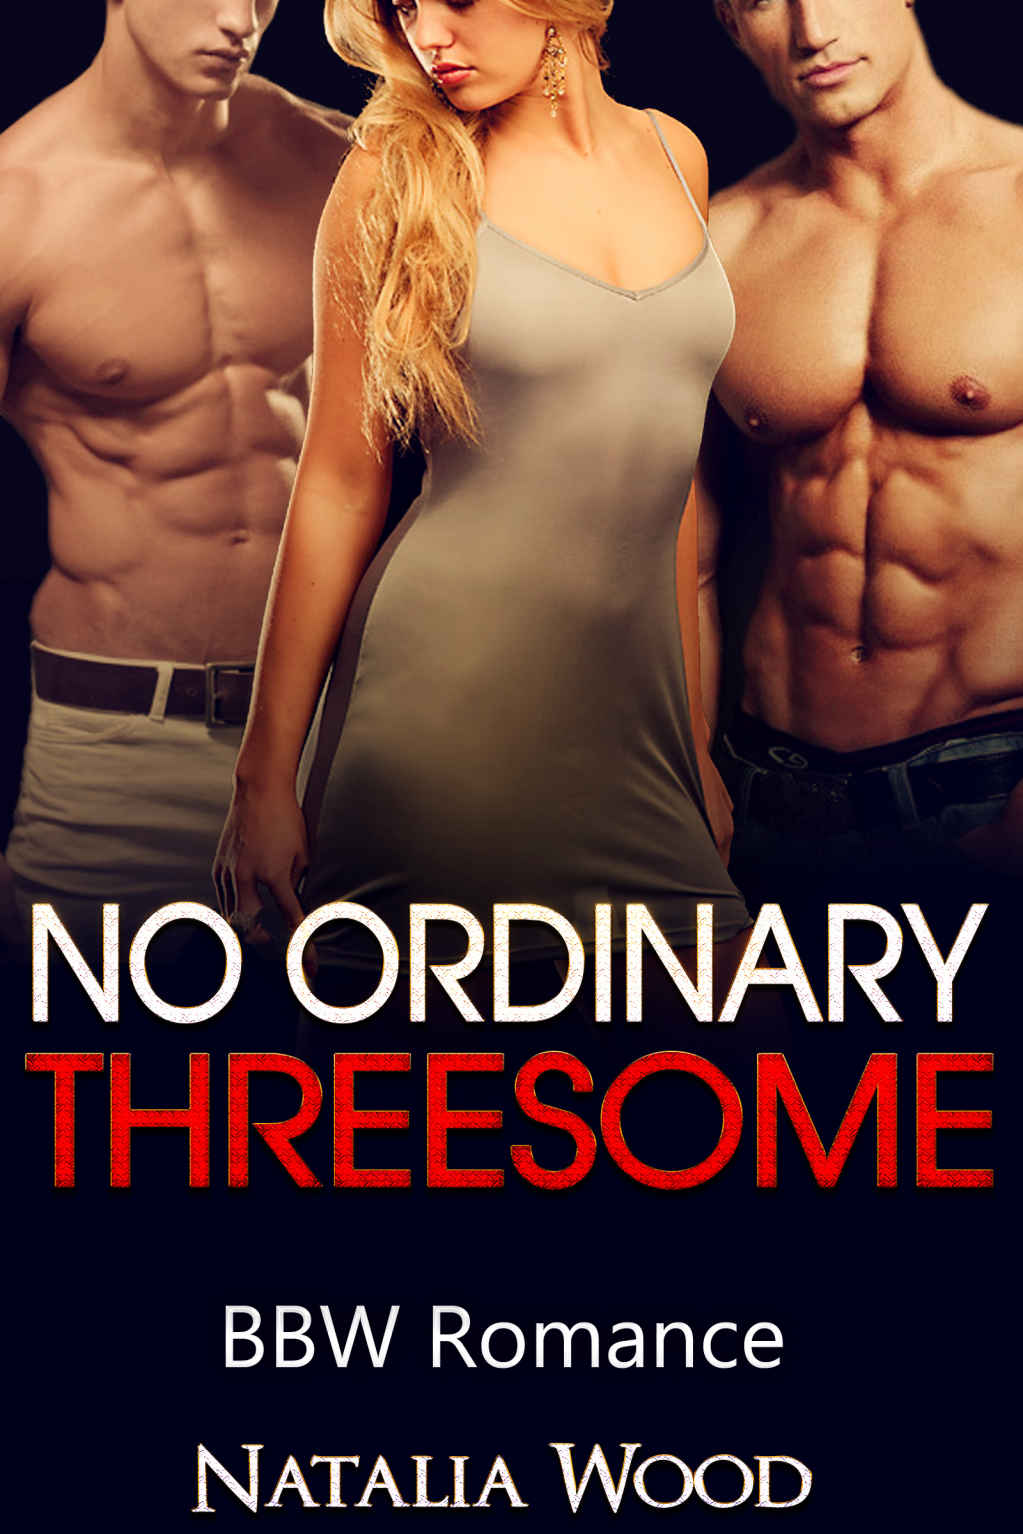 read free bbw romance: no ordinary threesome (bbw mmf menage romance